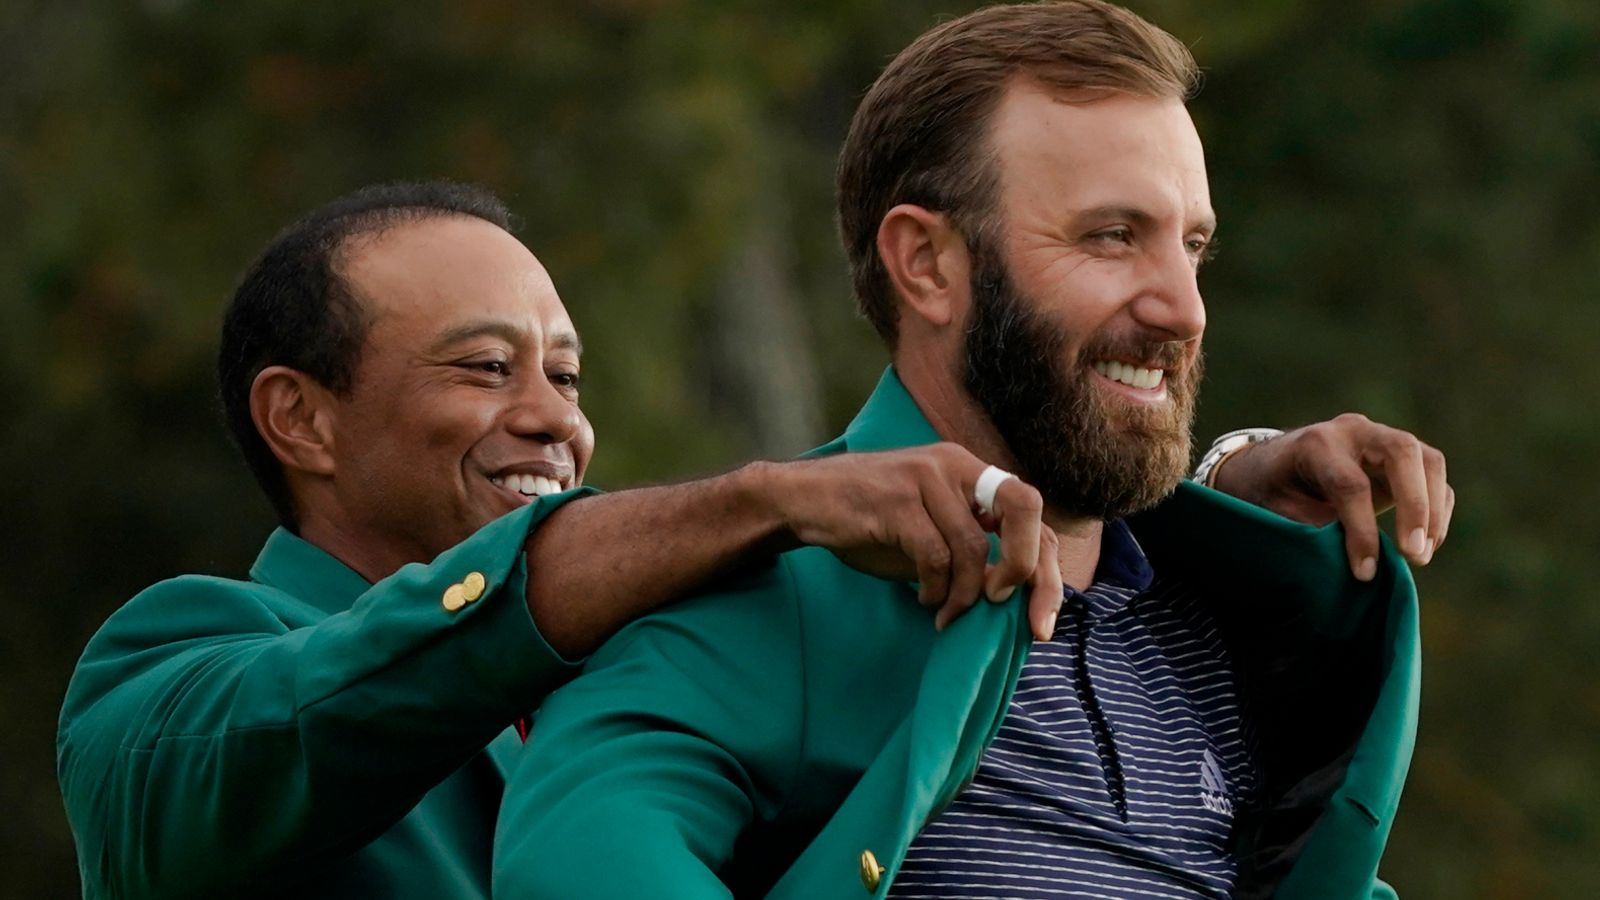 Dustin Johnson pays tribute to Tiger Woods after car crash and draws comparison with Ben Hogan